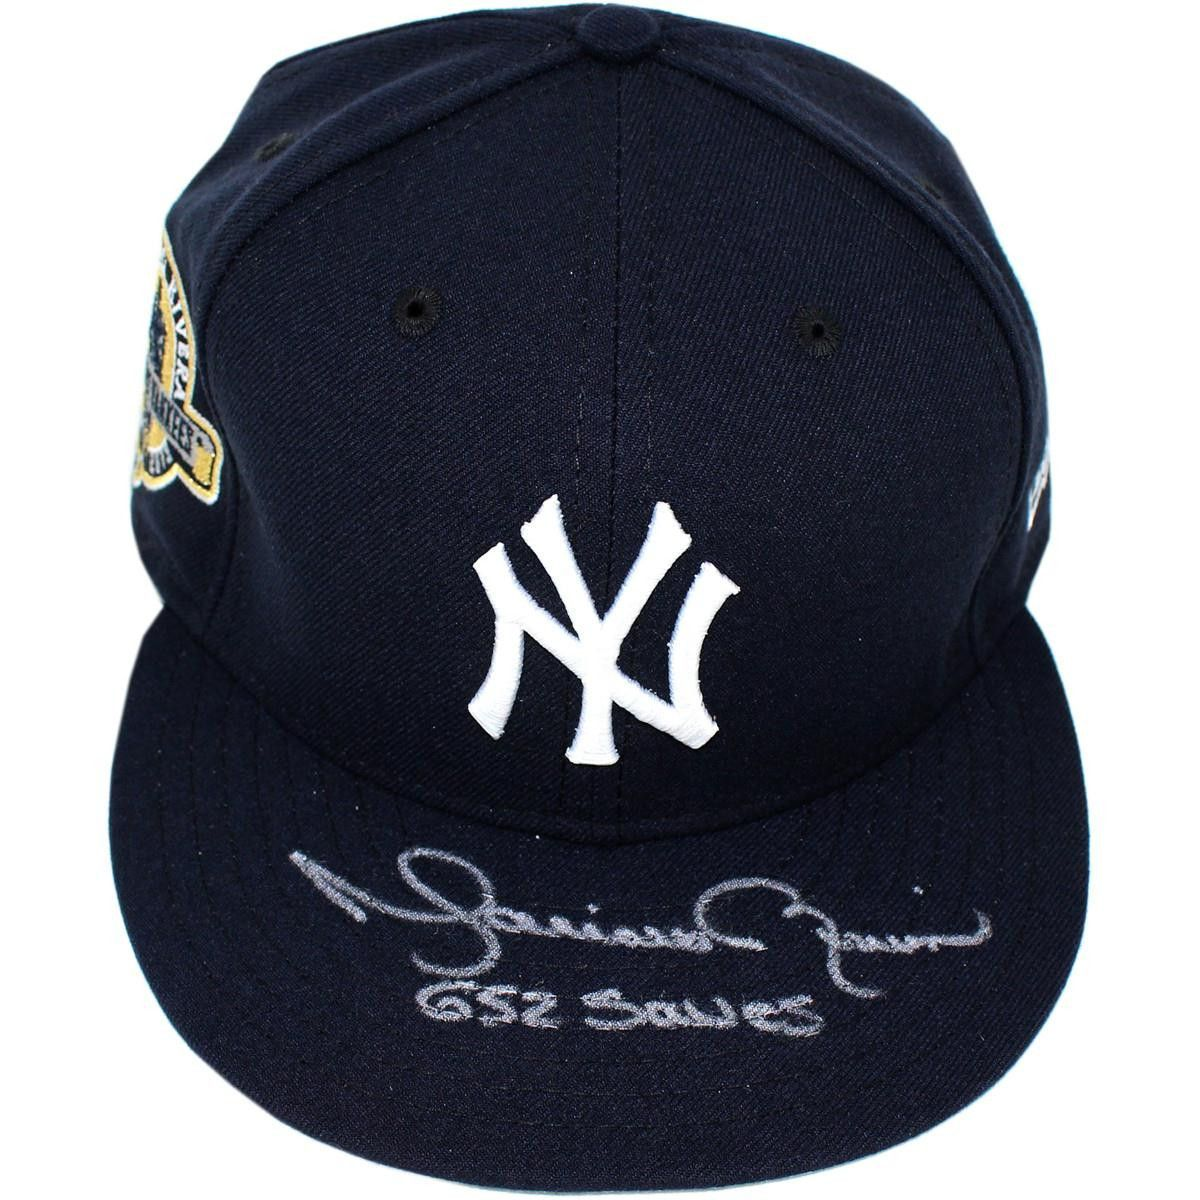 8dc171894ed ... mariano rivera signed new york yankees farewell hat sz 7 38 style 2